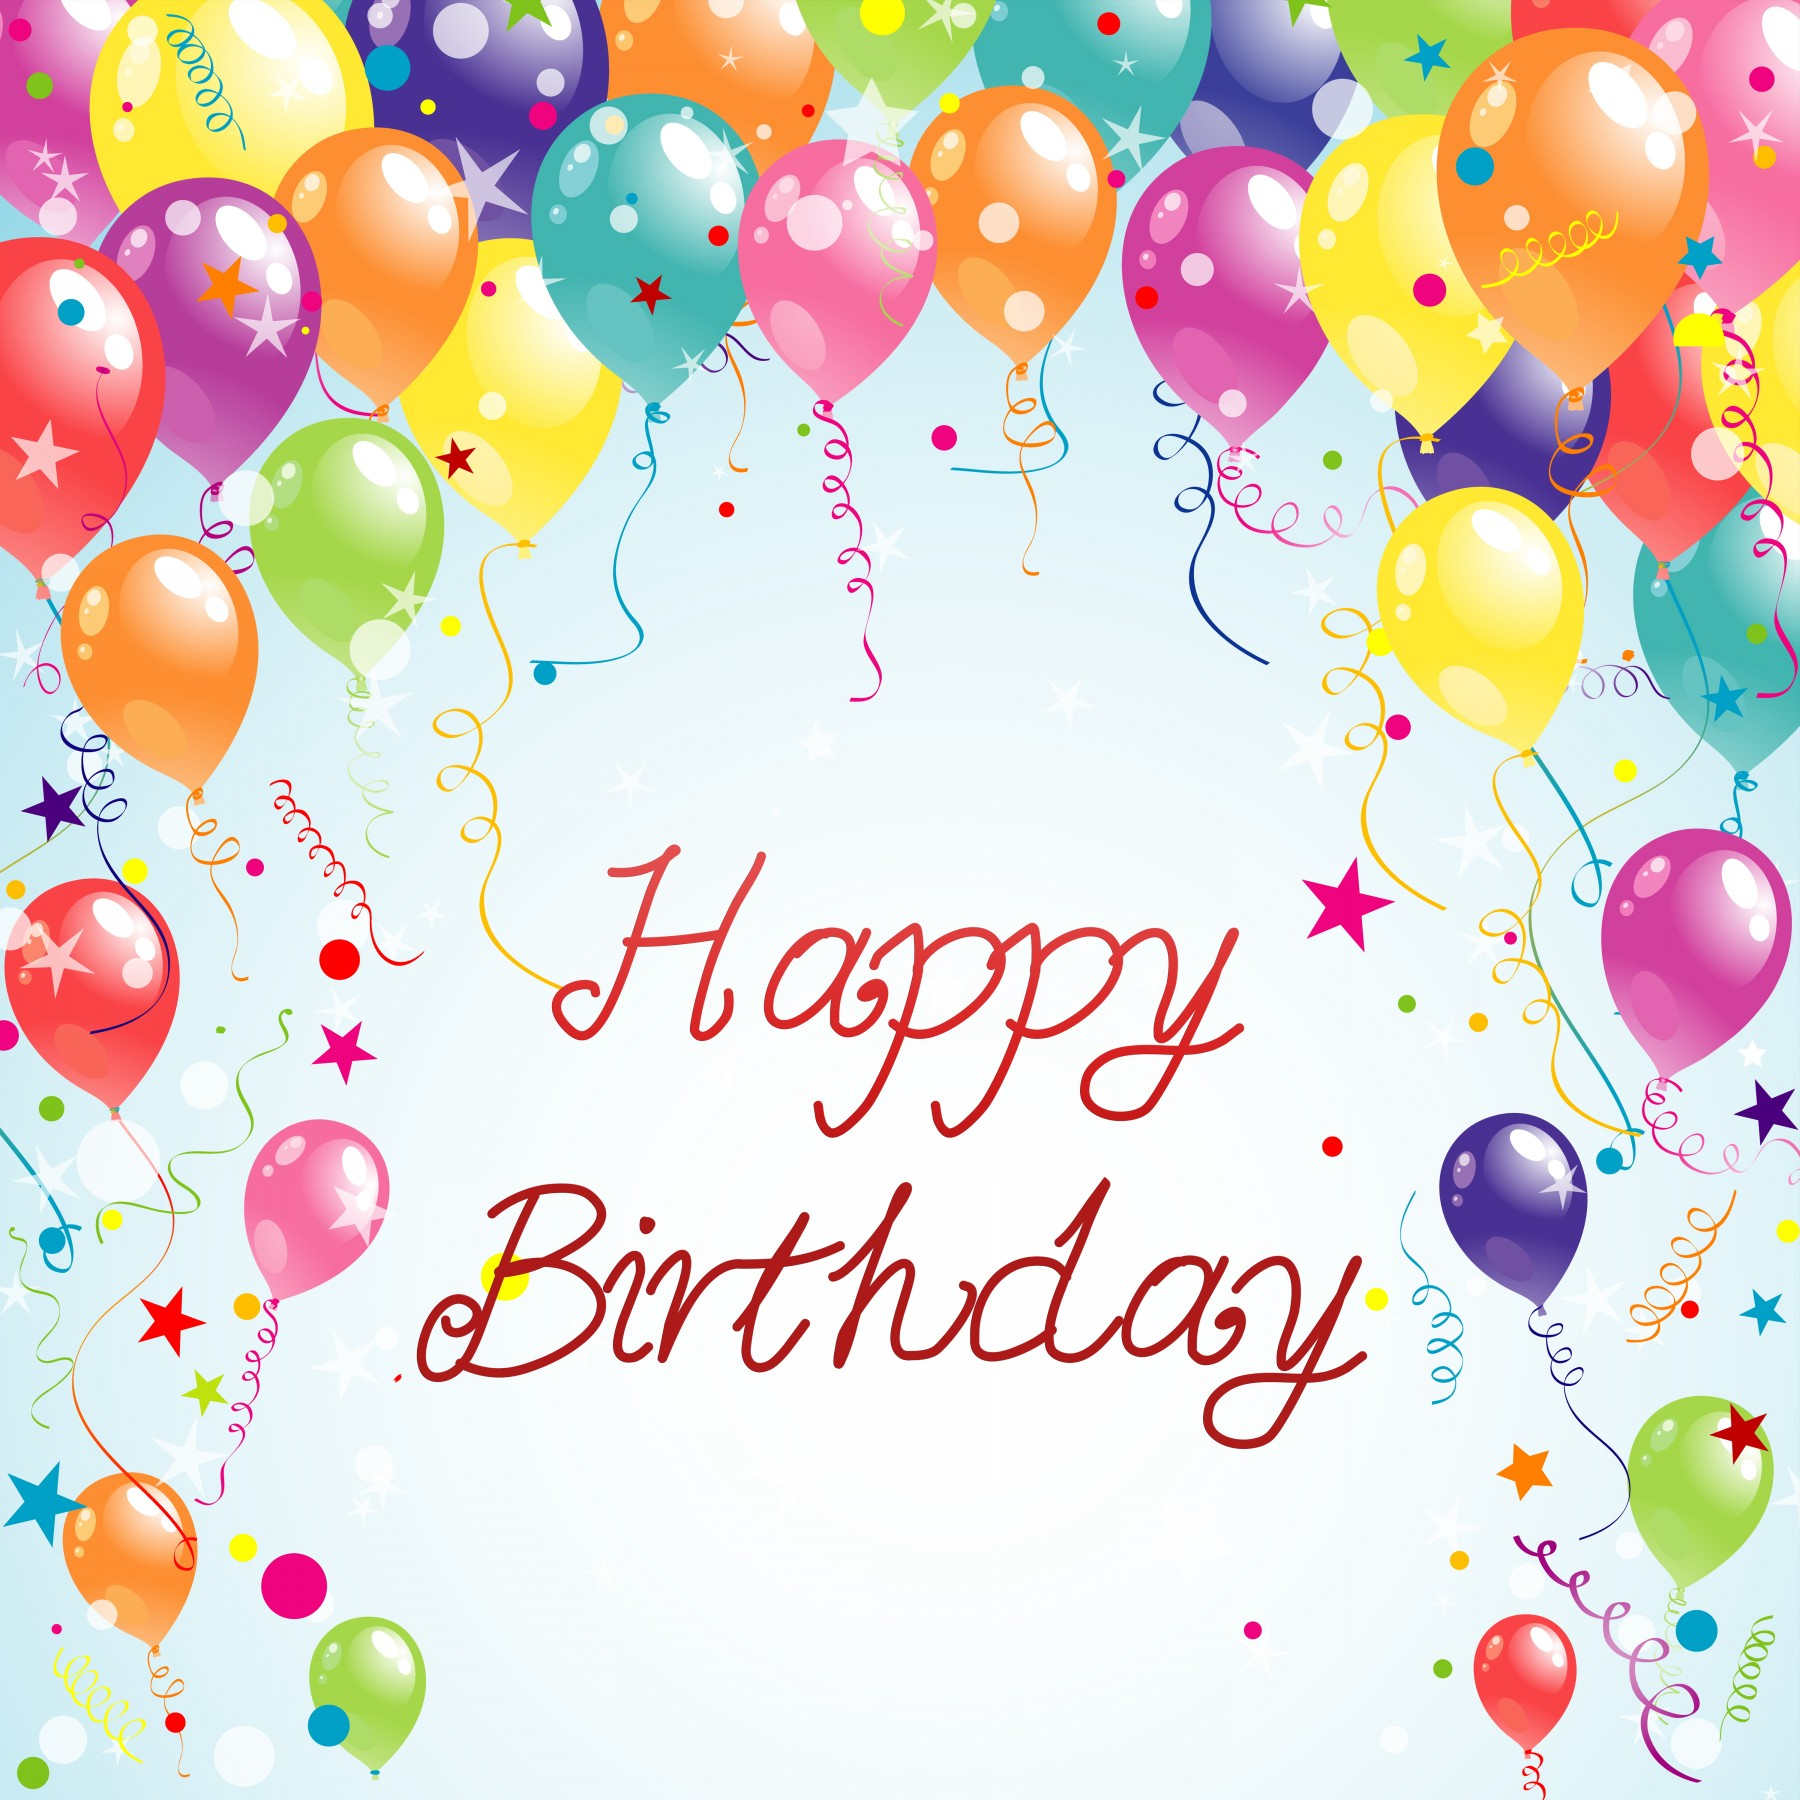 pictures of birthday cards ; Most-Popular-Birthday-Cards-to-inspire-you-how-to-create-the-birthday-Card-with-the-best-way-1